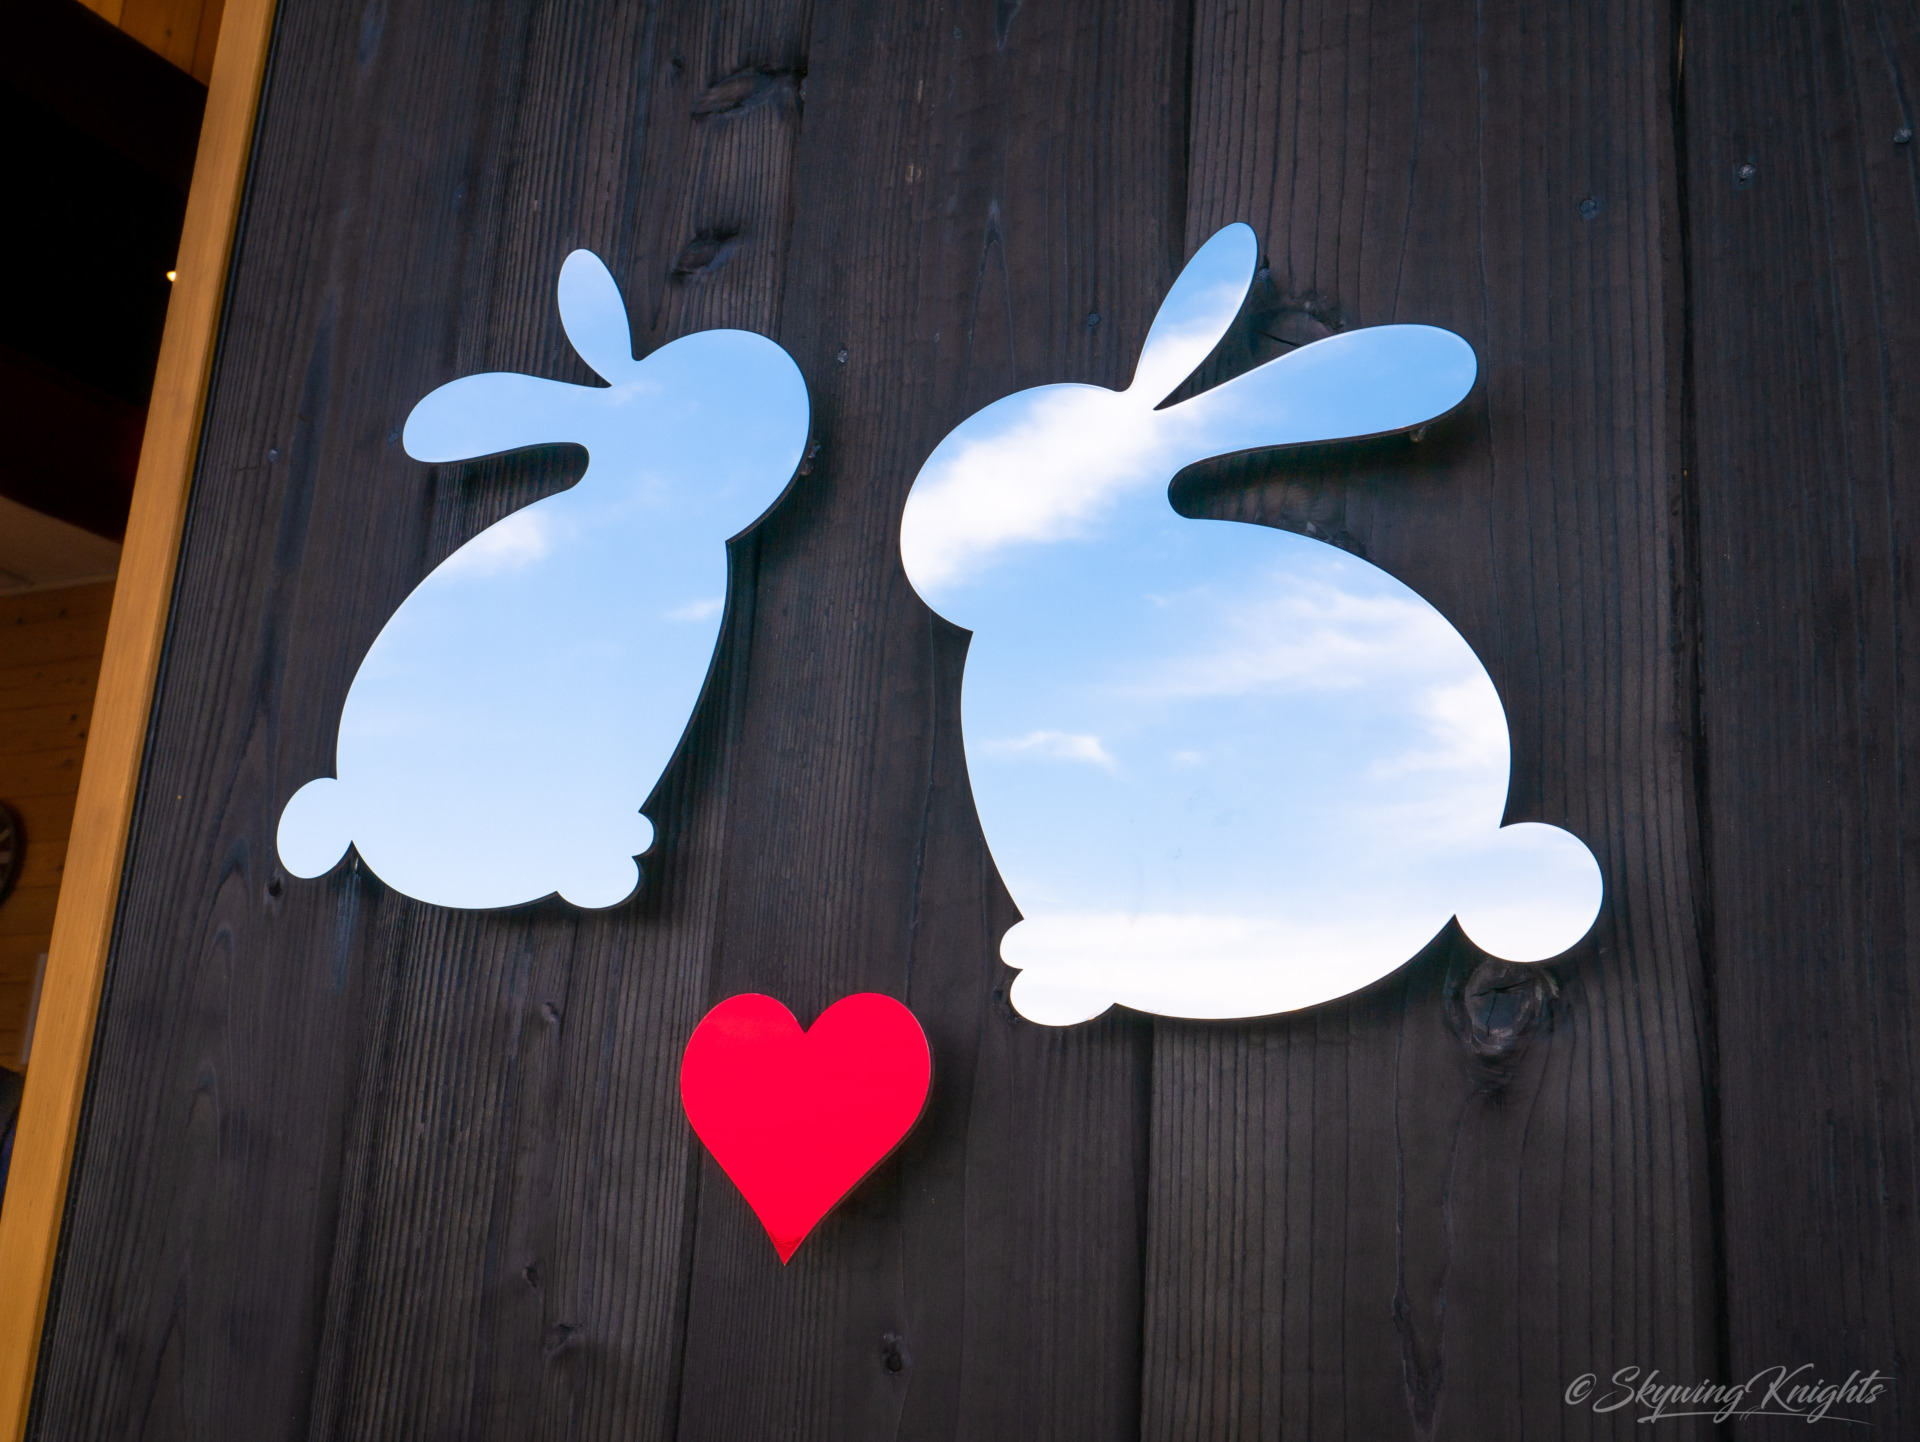 Travels: The Bunny Island (Usagishima) – A Cuteness Overdose!